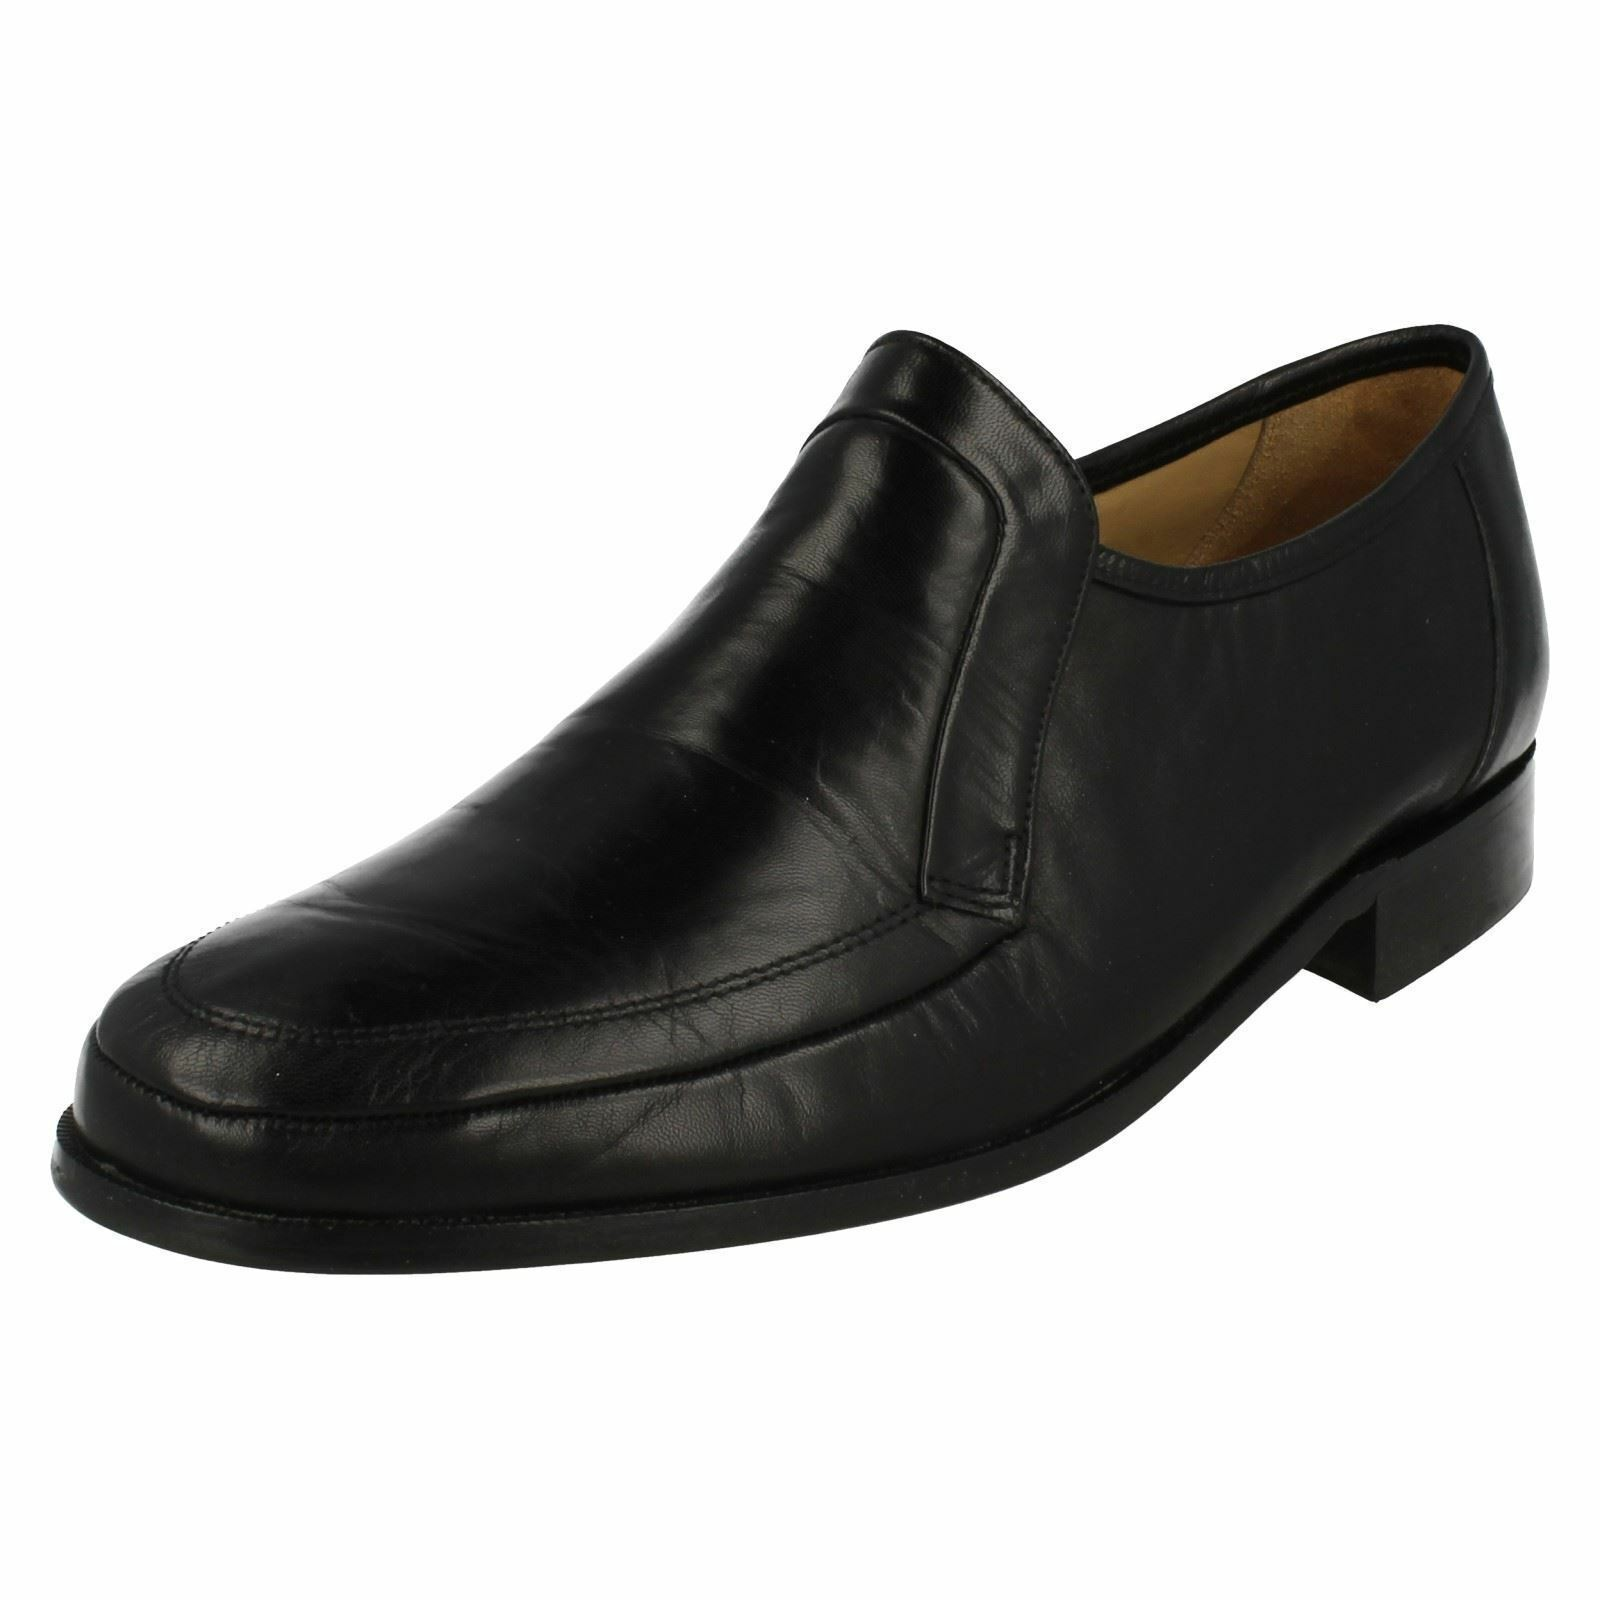 Mens Baxter Black Leather Slip On Formal Shoe By Thomas Blunt